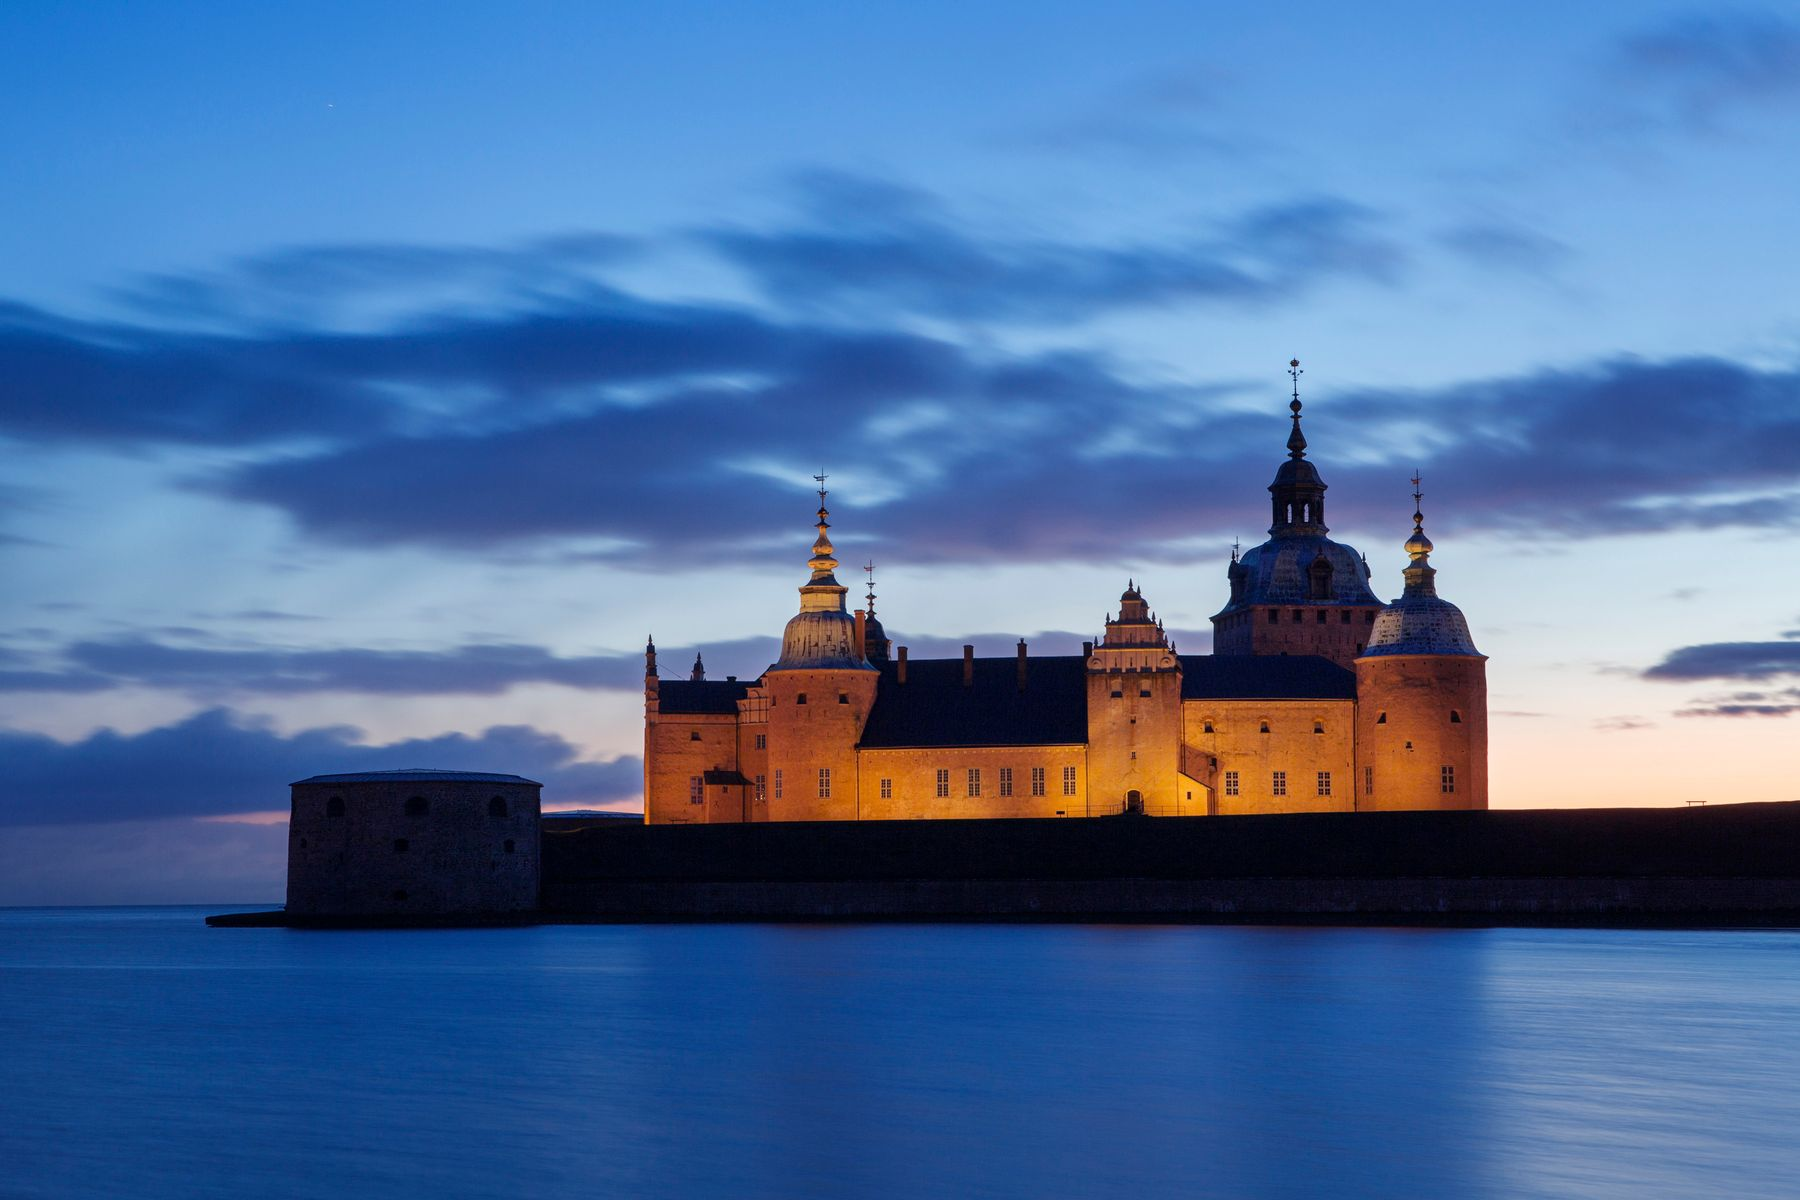 For a fairytale Sweden getaway with a slice of history: the Kalmar castle